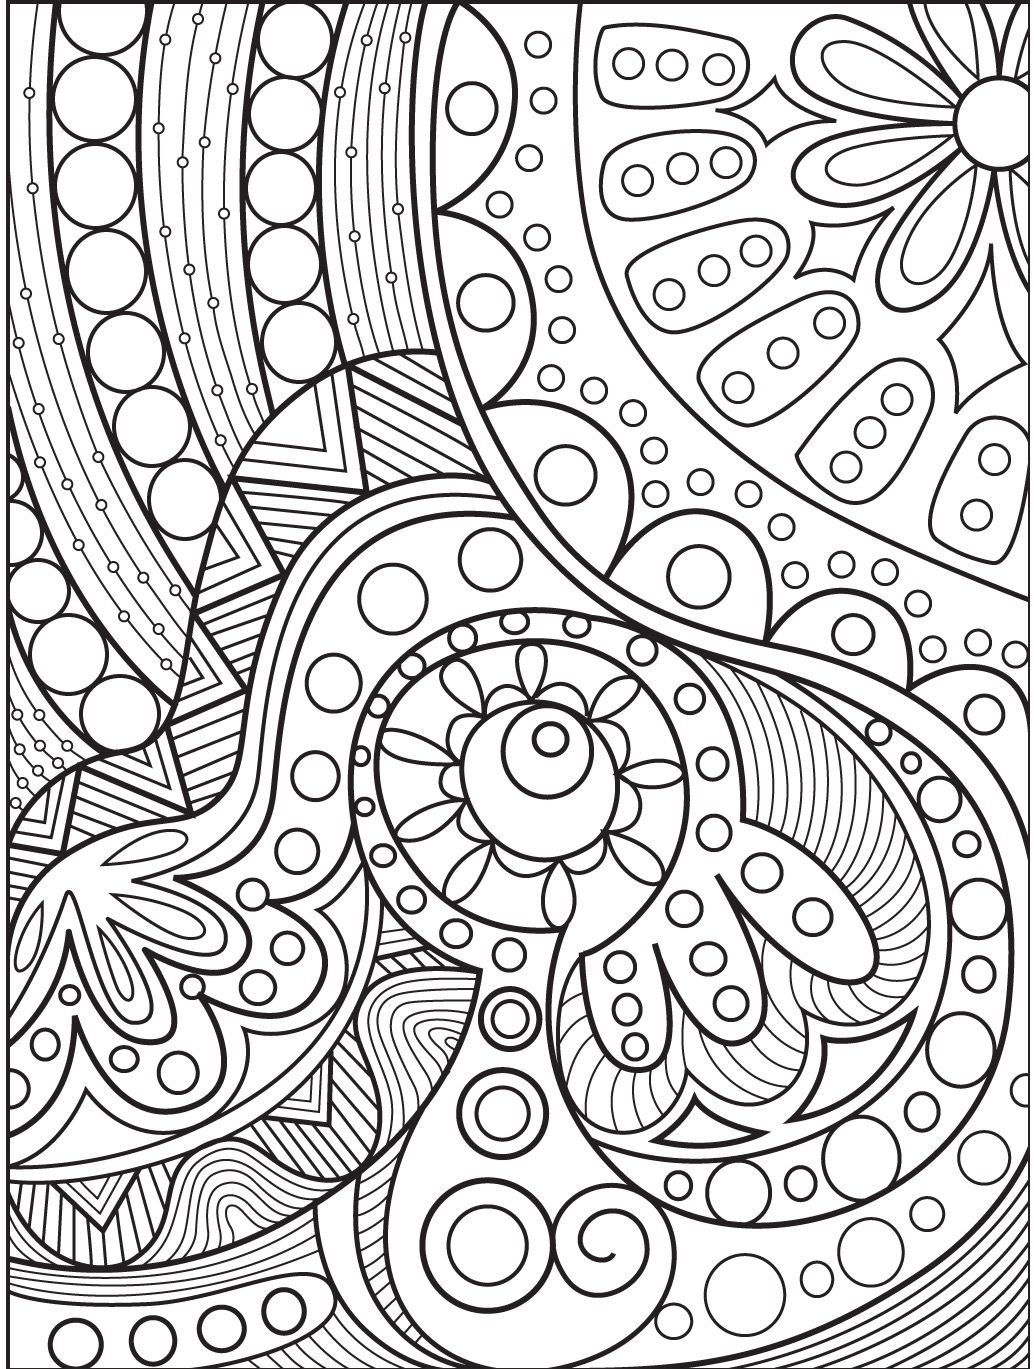 Abstract Coloring Page On Colorish Coloring Book App For Adults By Goodsofttech Abstract Coloring Pages Pattern Coloring Pages Owl Coloring Pages